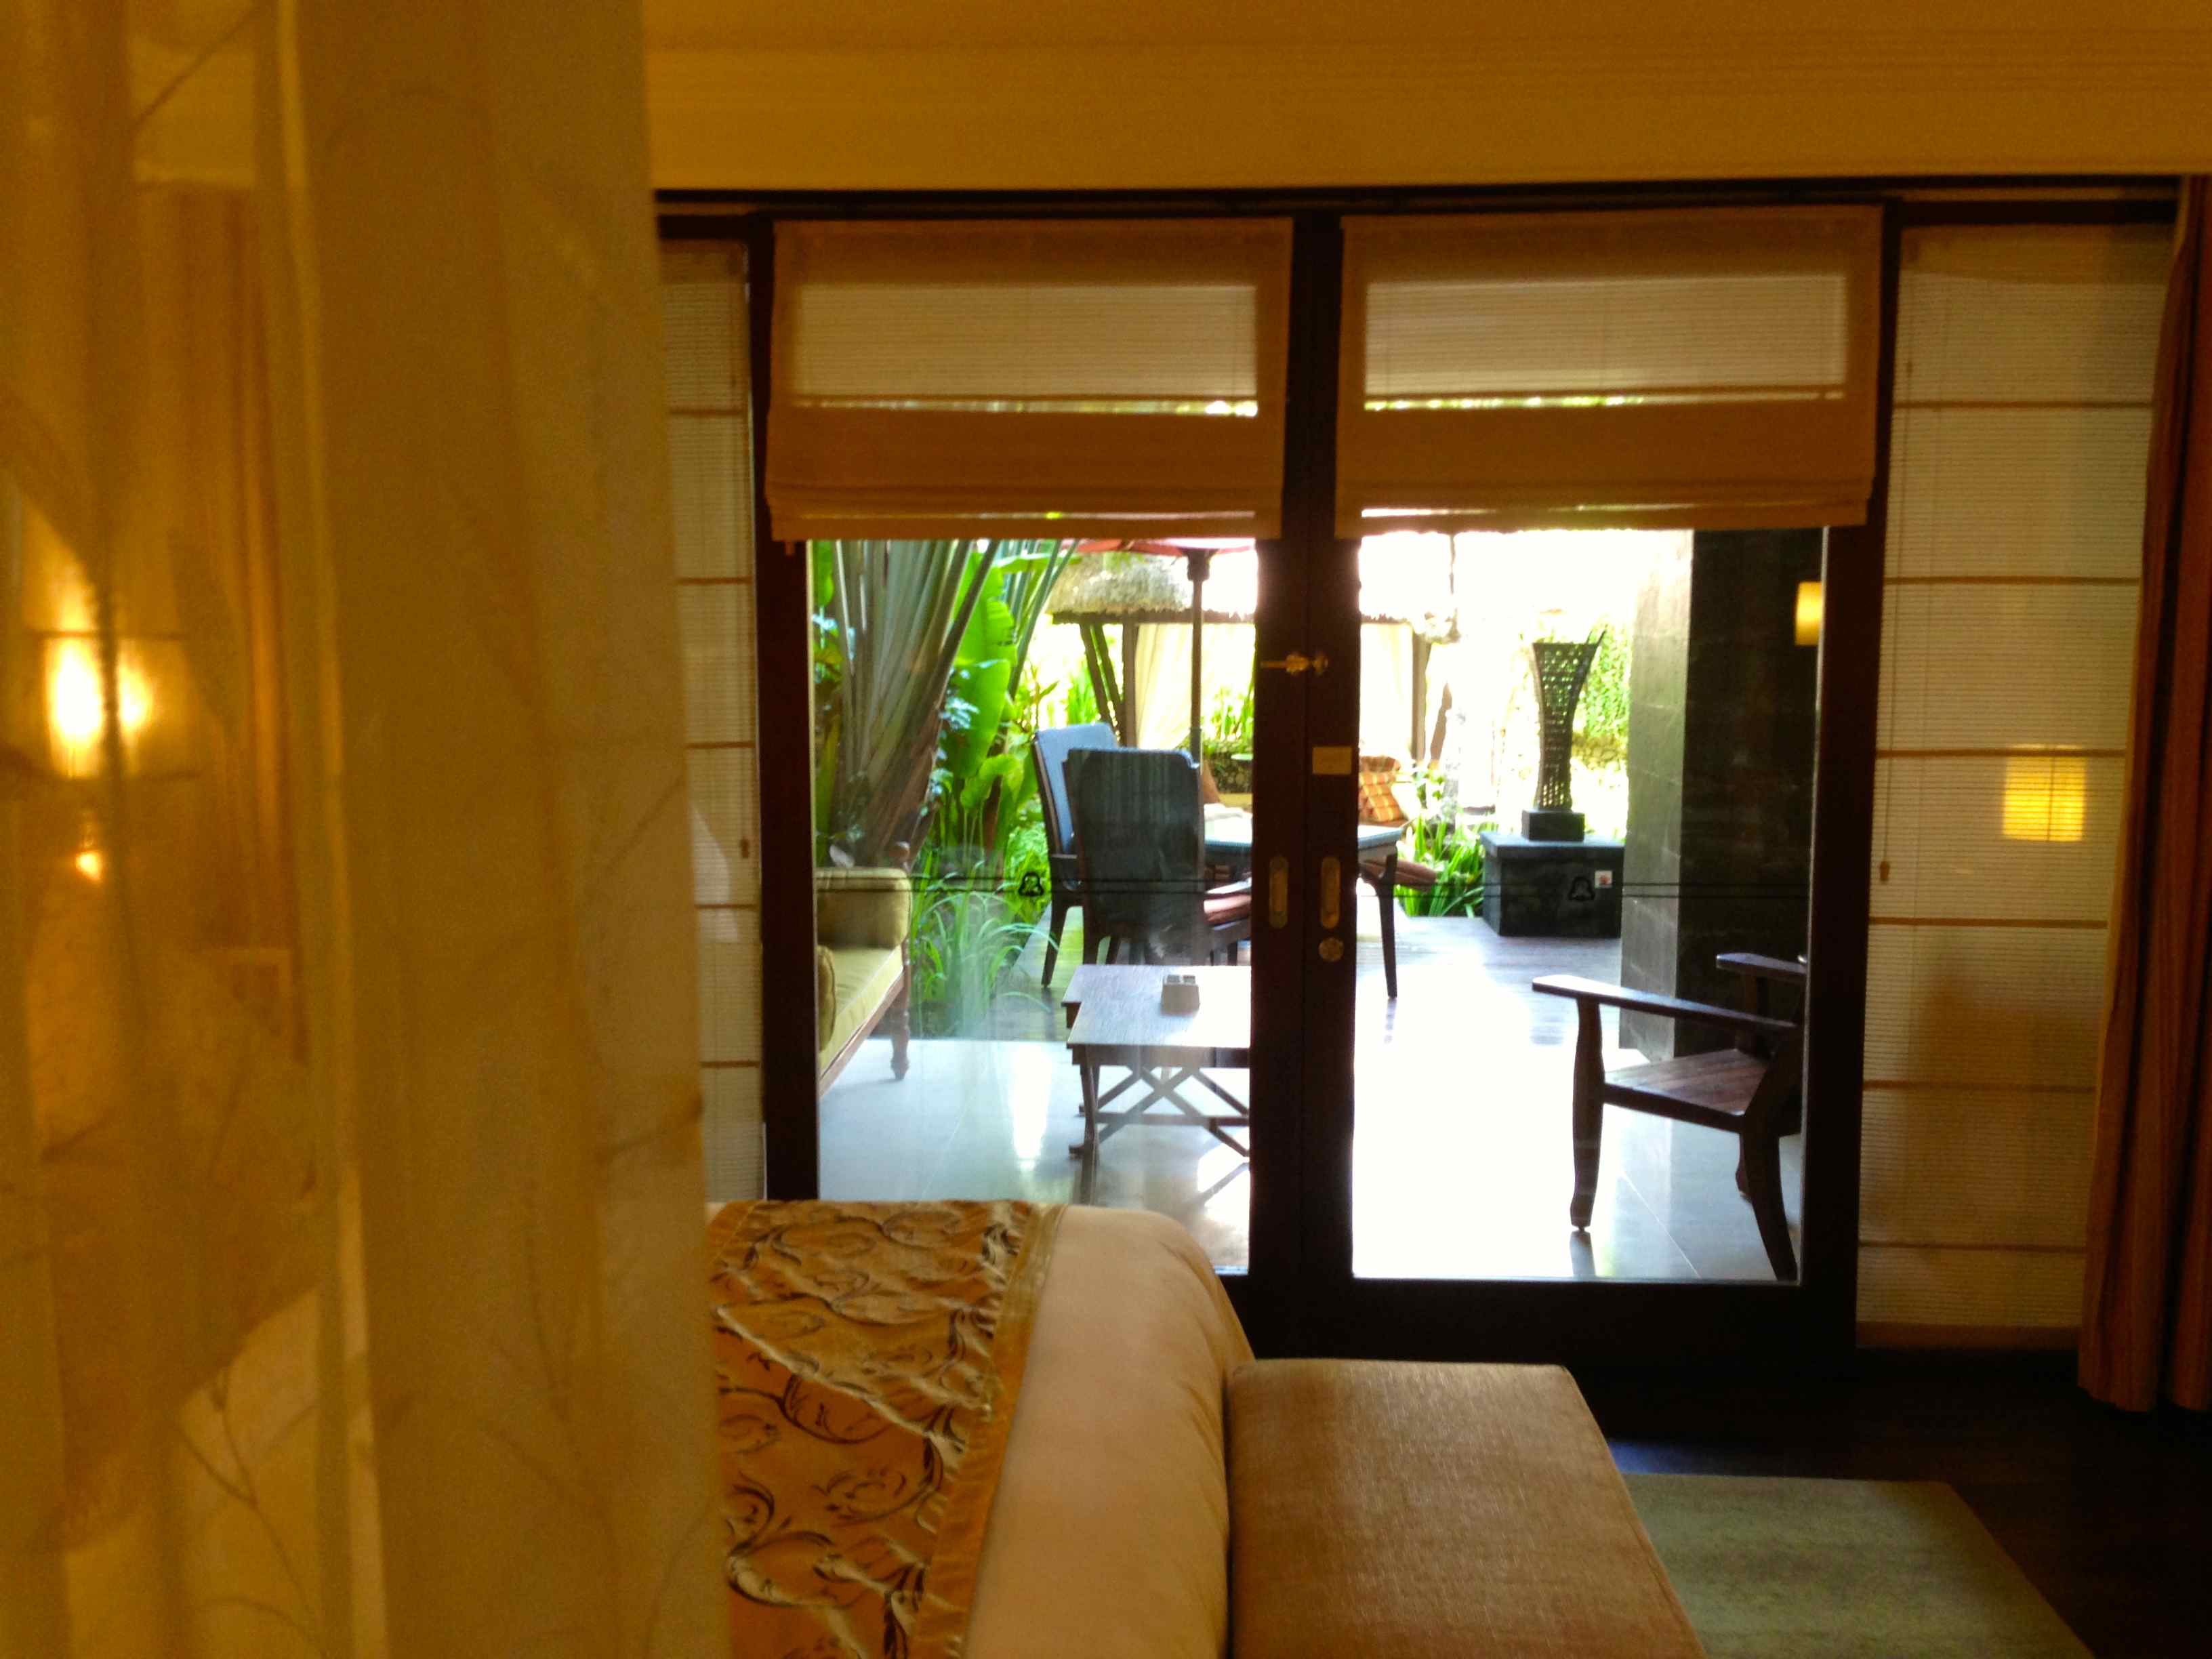 Sneak peek my bali st regis pool suite point me to the plane walk in wardrobe really comfy king size bed stand alone tub rain shower and two tvs one built into the wall in the bathroom in front of the tub rubansaba